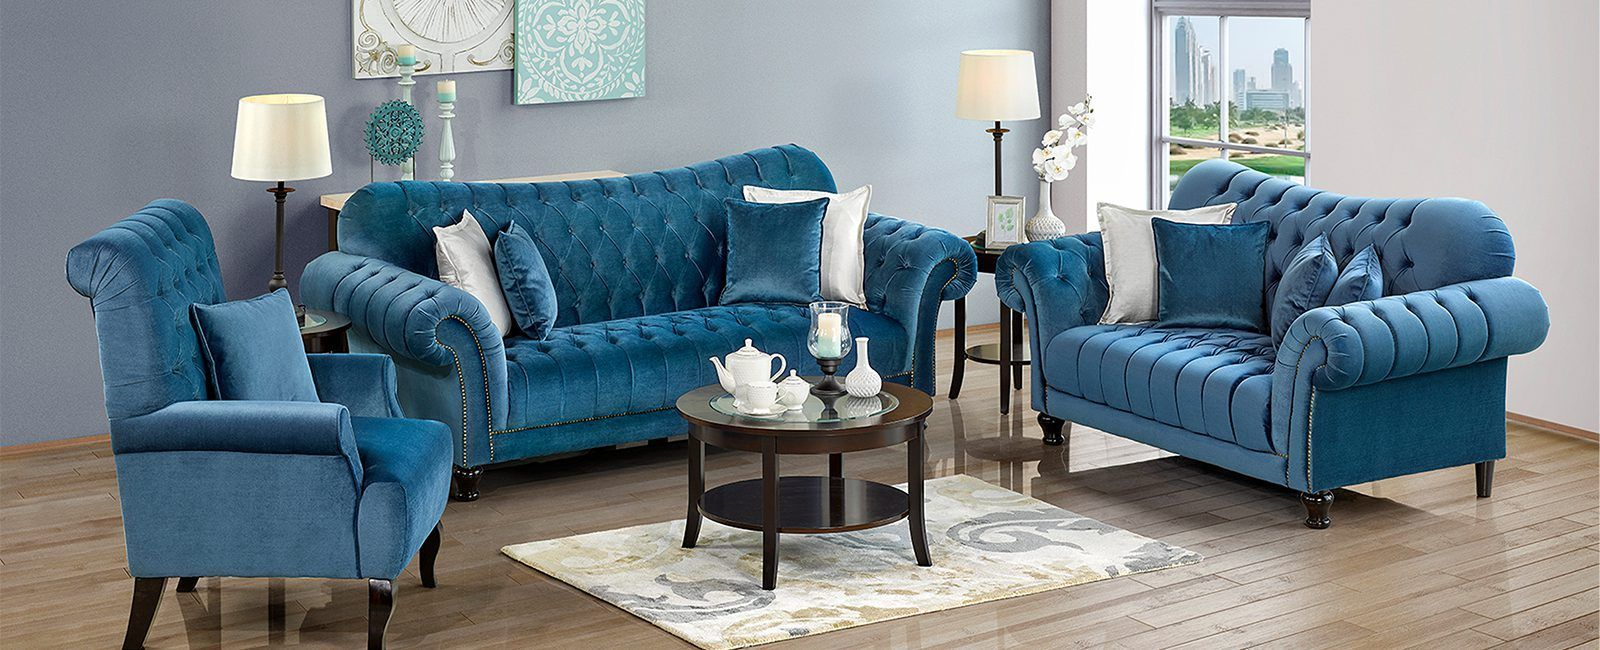 Royal Furniture Dubai Offers Stylish Modern Furniture For Every Room Shop Affordable Contemporary Furniture Including Living Room Furniture Living Room Sofa In 2020